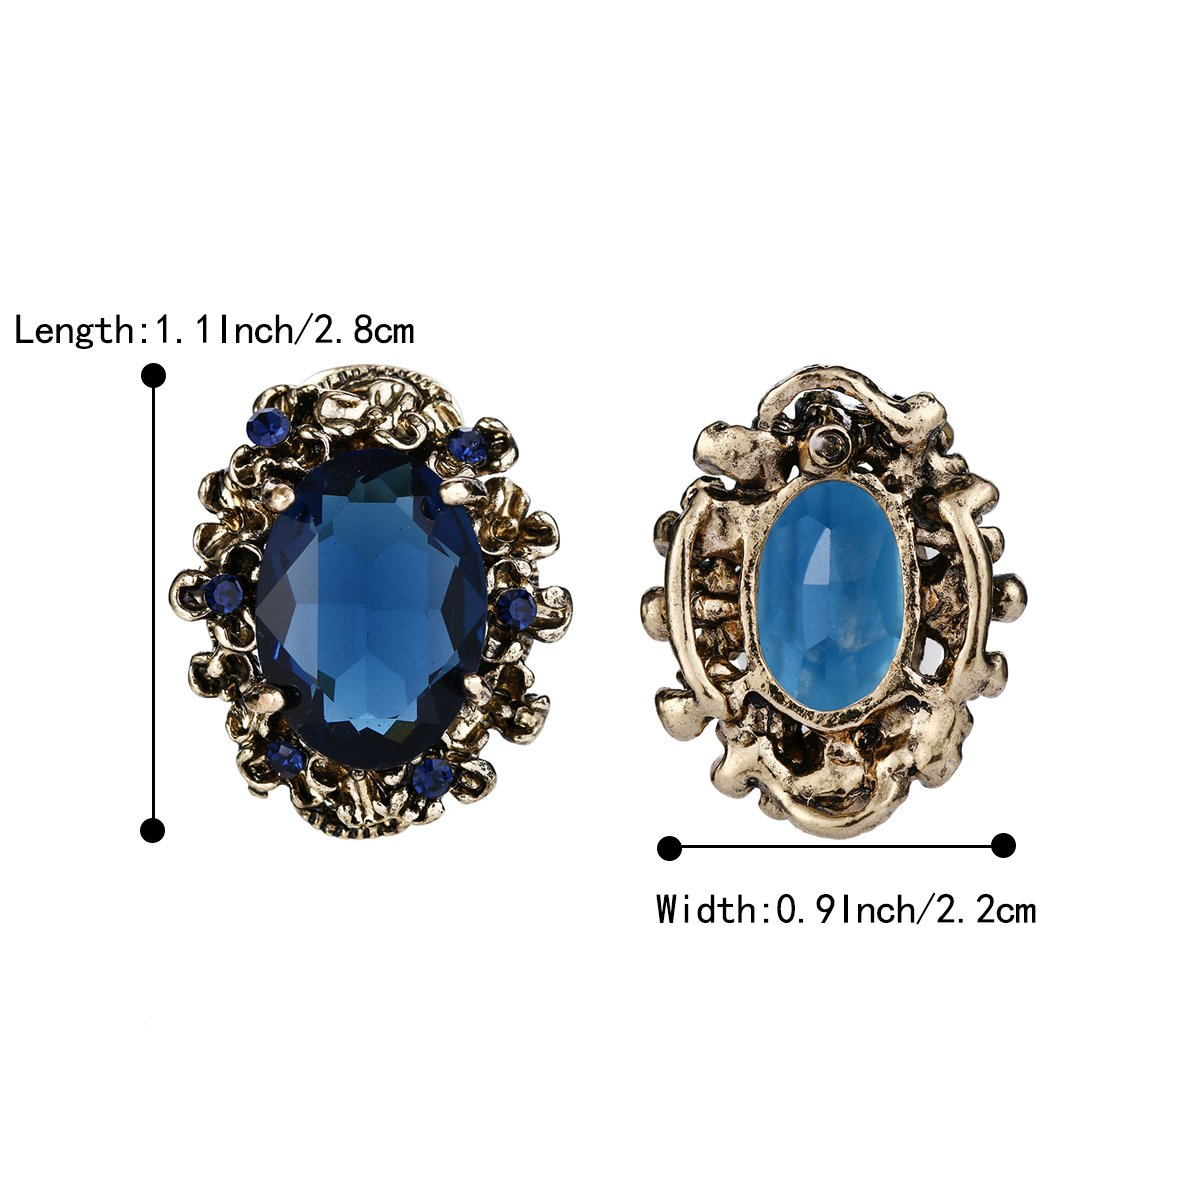 BriLove Antique-Gold-Toned Stud Earrings Women's Victorian Style Crystal Floral Scroll Cameo Inspired Oval Earrings Sapphire Color by BriLove (Image #5)